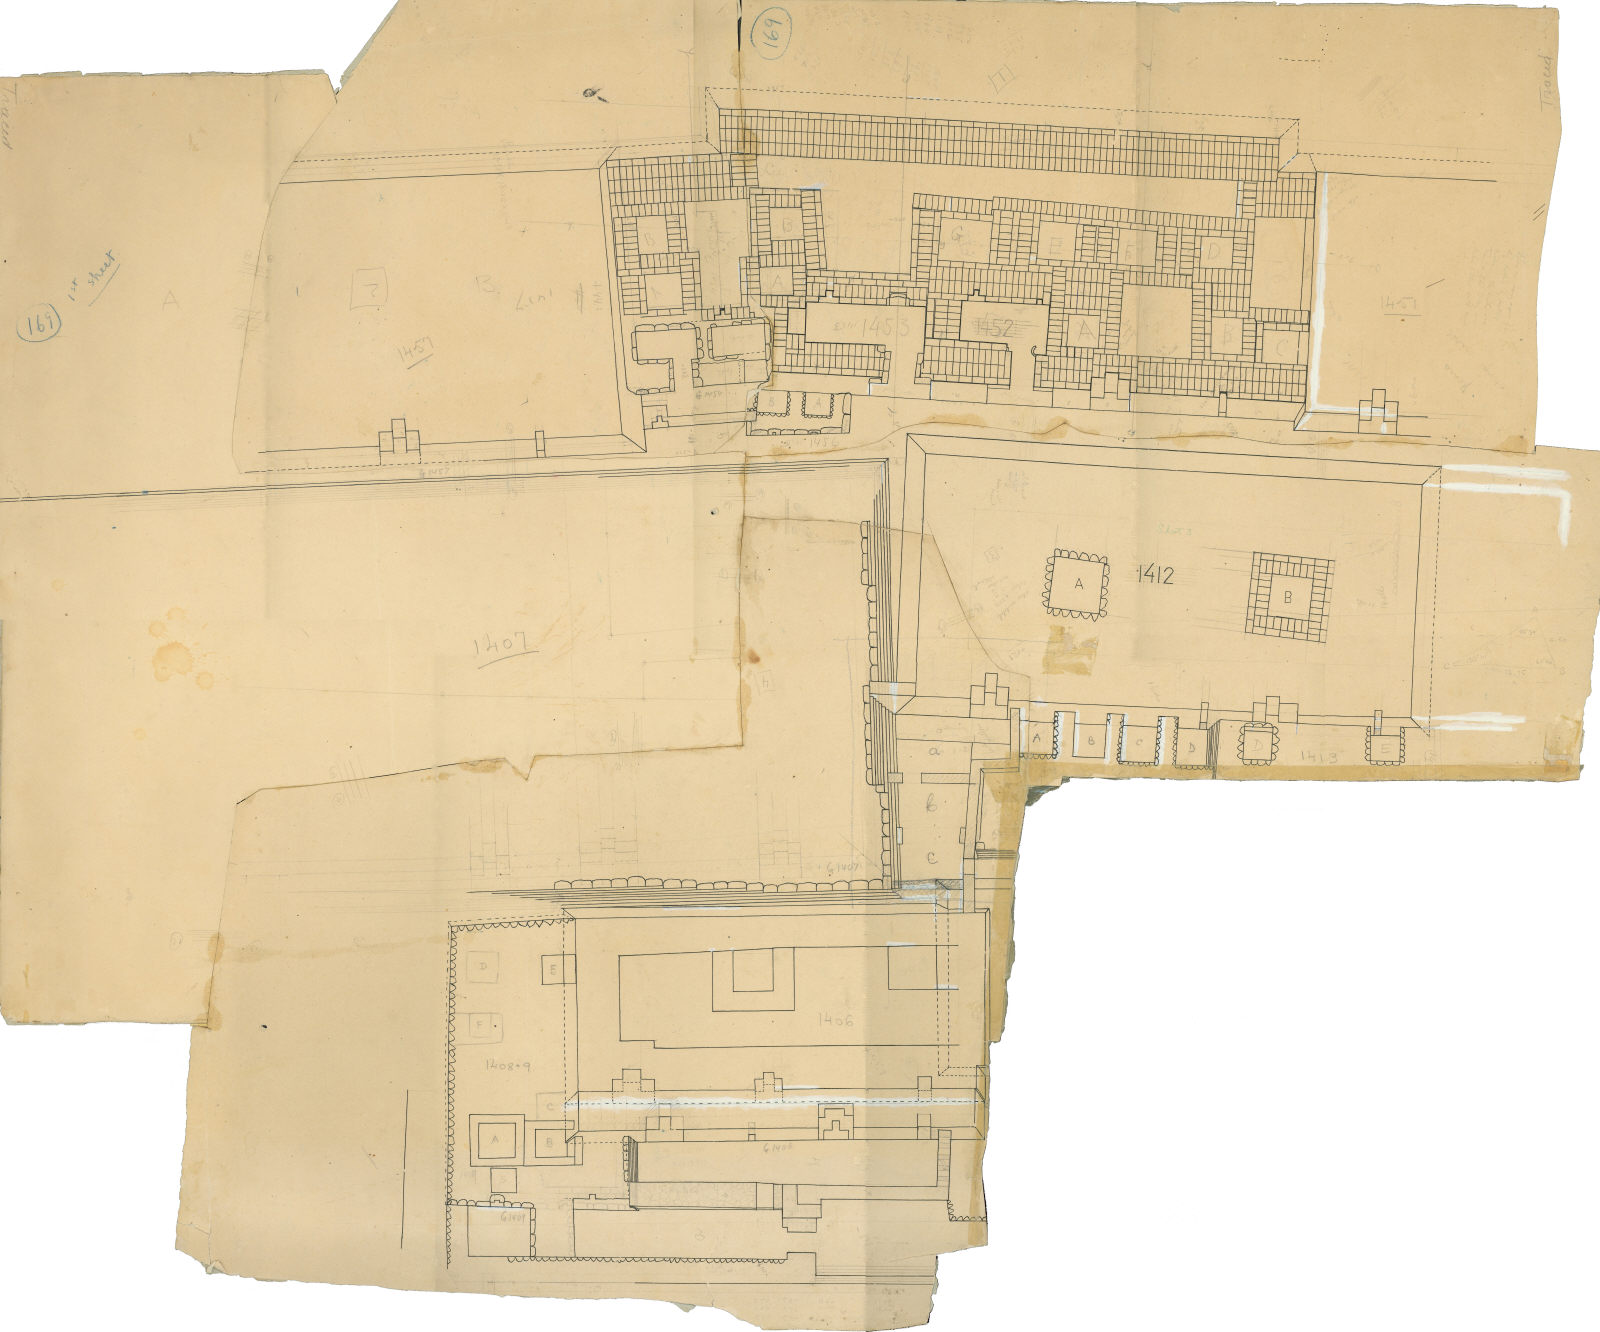 Maps and plans: Plan of Cemetery G 1400